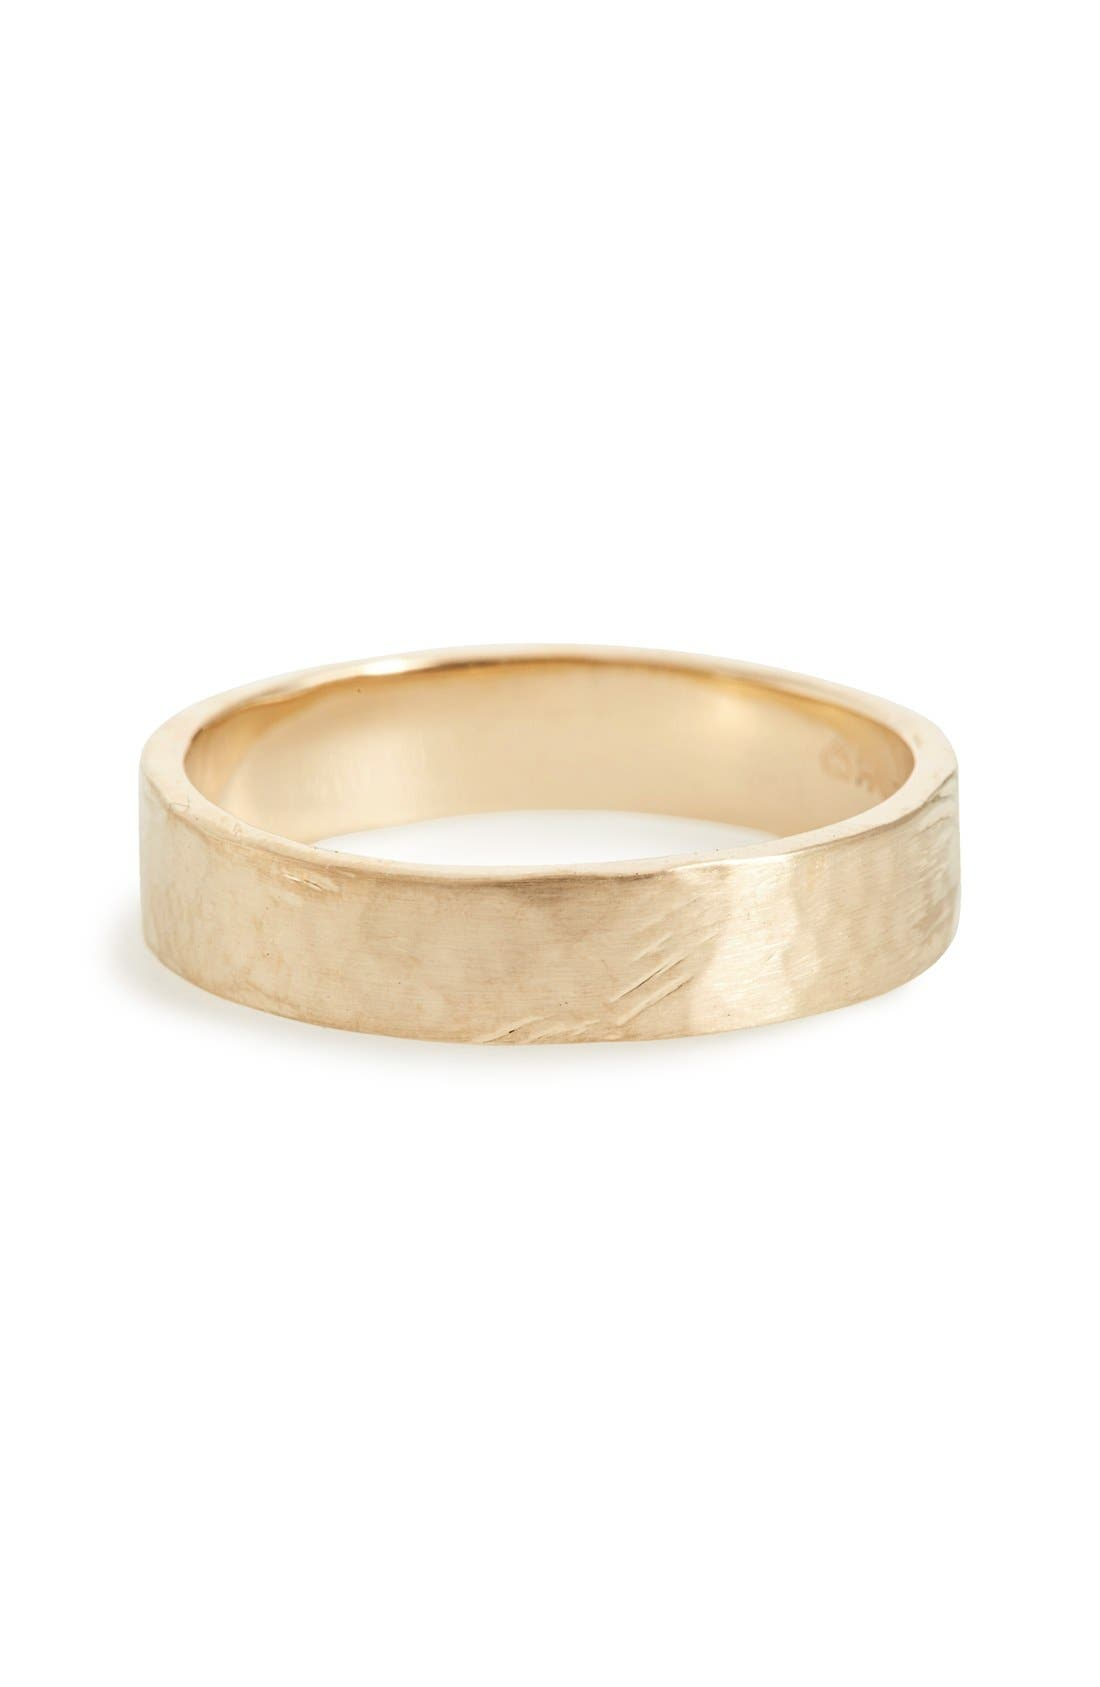 Harmony<sup>®</sup> Flat Classic Hammered Band Ring,                             Main thumbnail 1, color,                             710